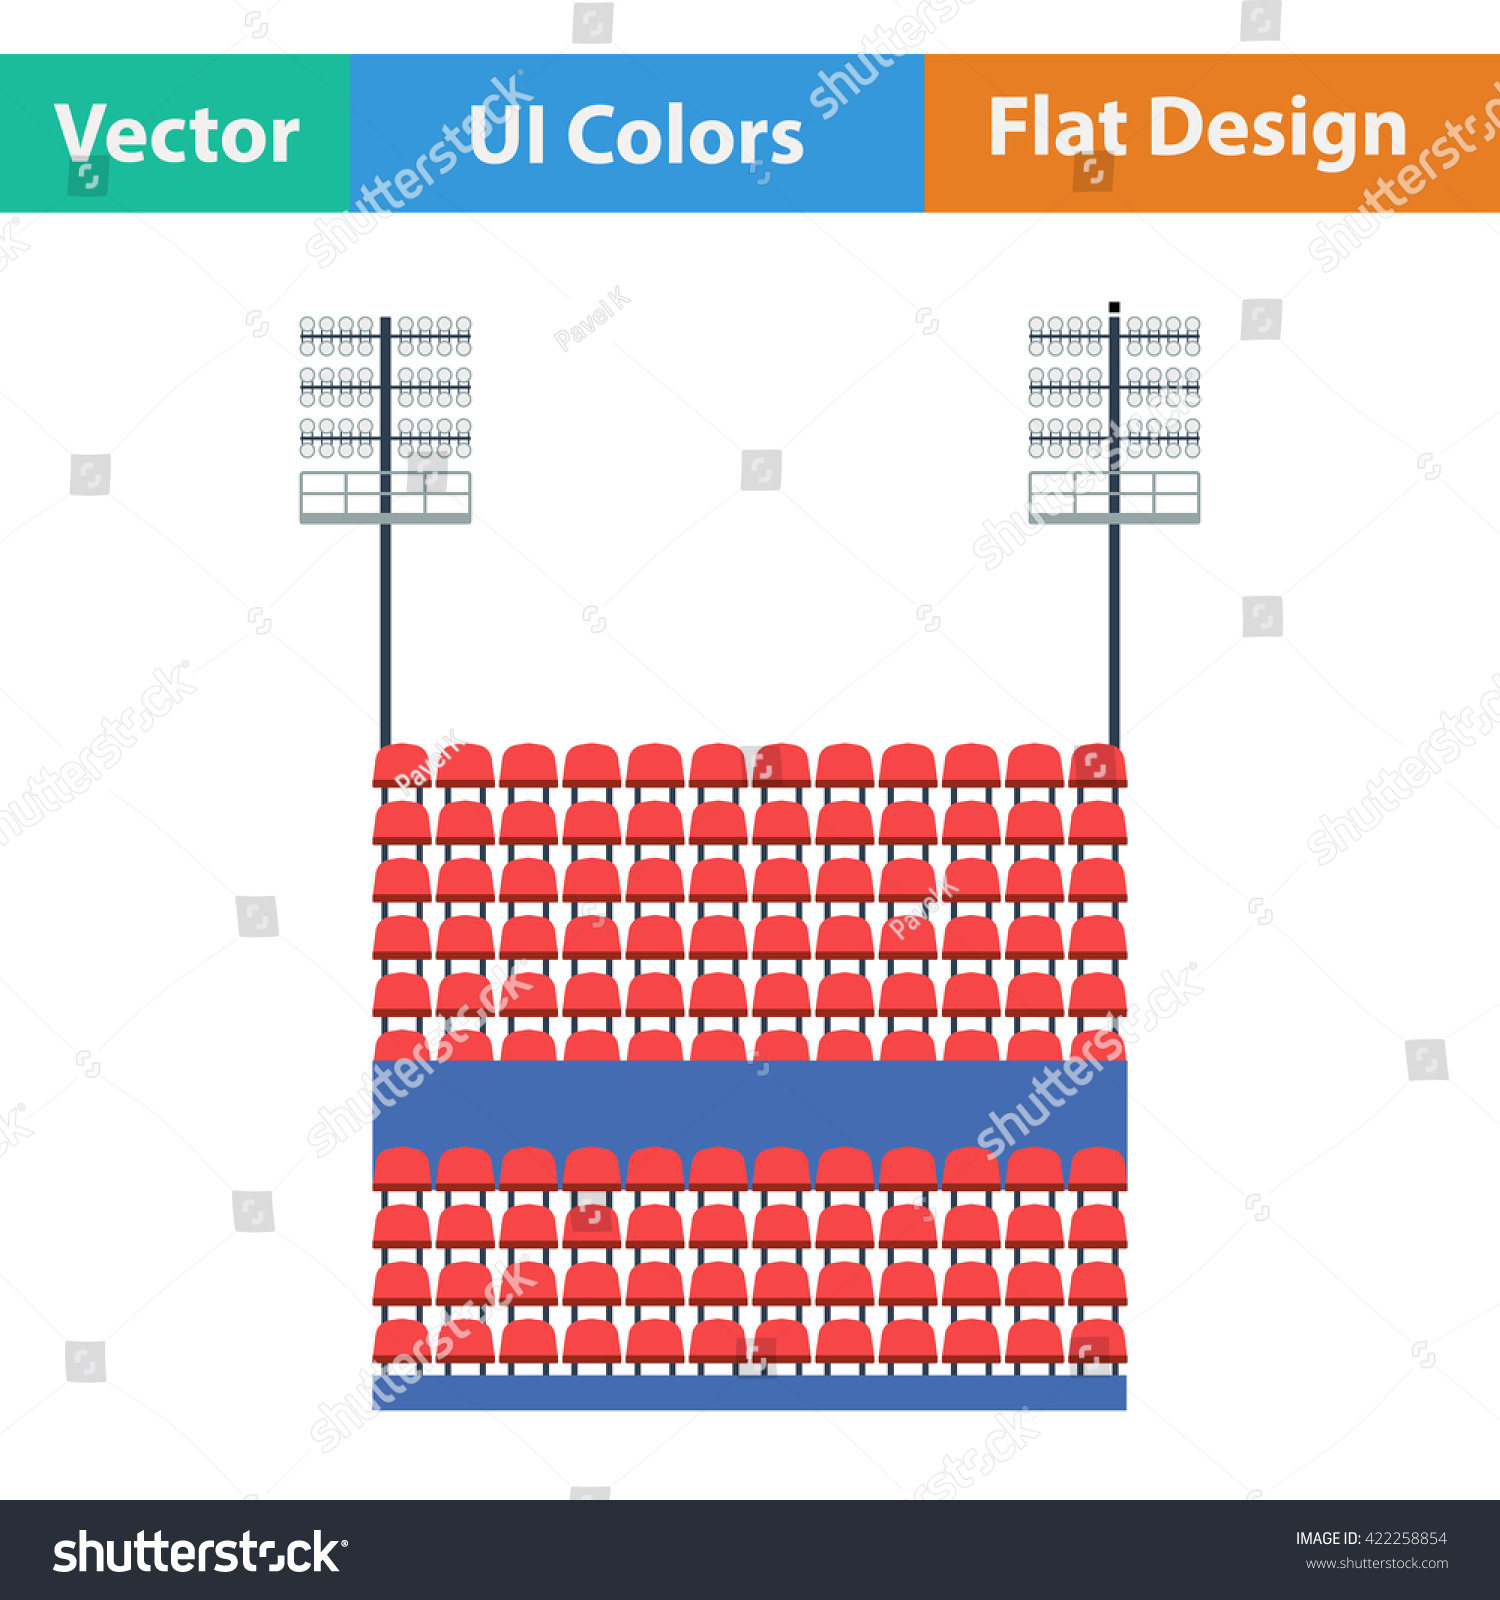 Stadium Tribune Seats Light Mast Icon Stock Vector Royalty Free Wiring Diagram For With And Flat Design In Ui Colors